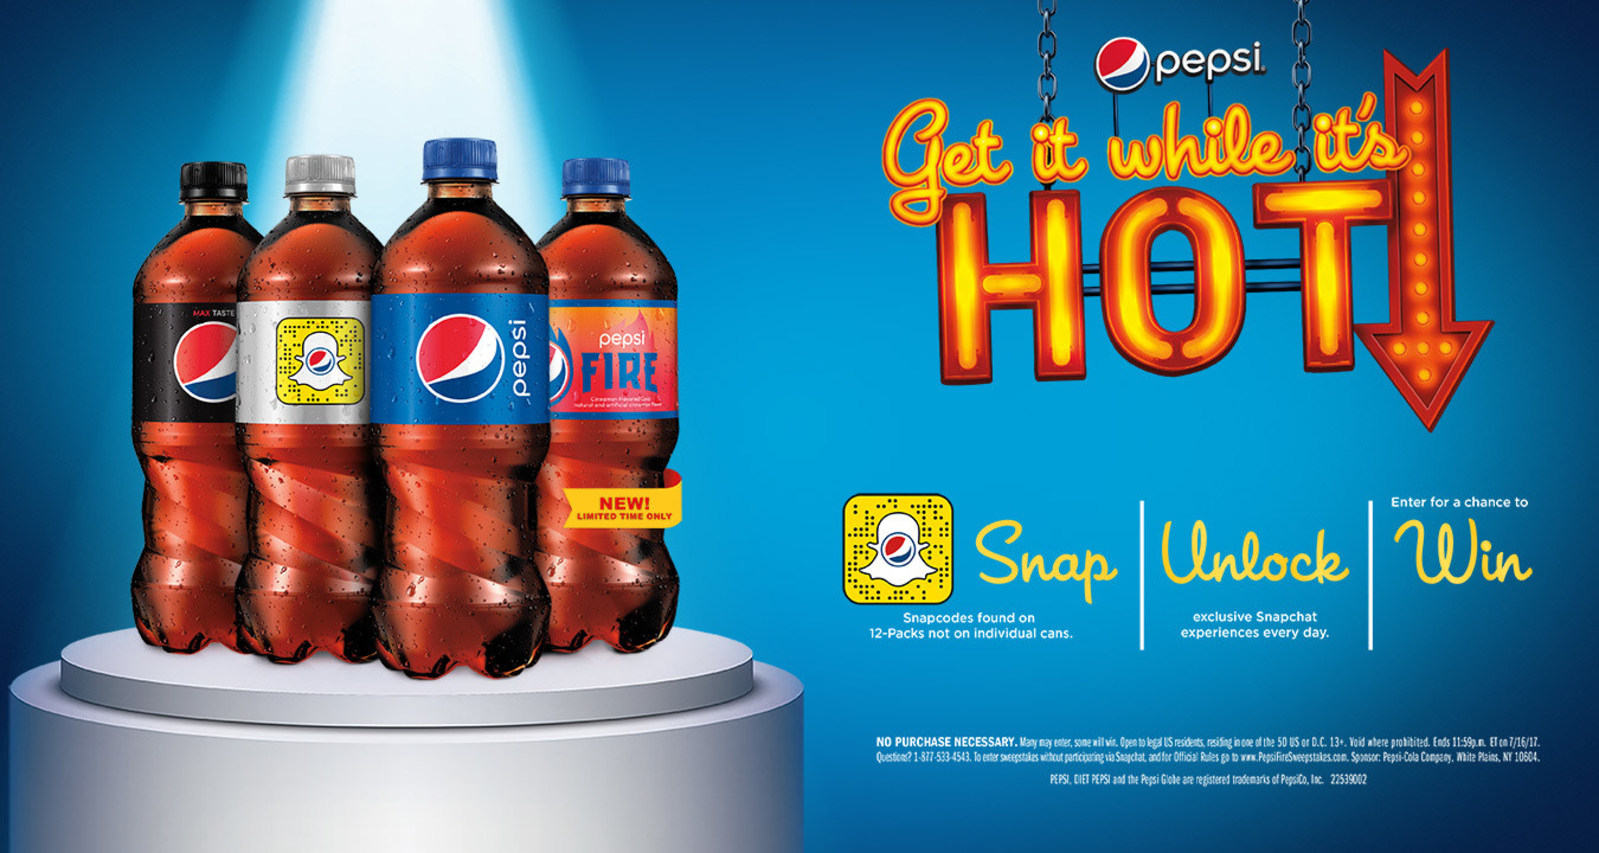 Pepsi Puts Snapcodes On Bottles To Engage Fans With Filters, Games